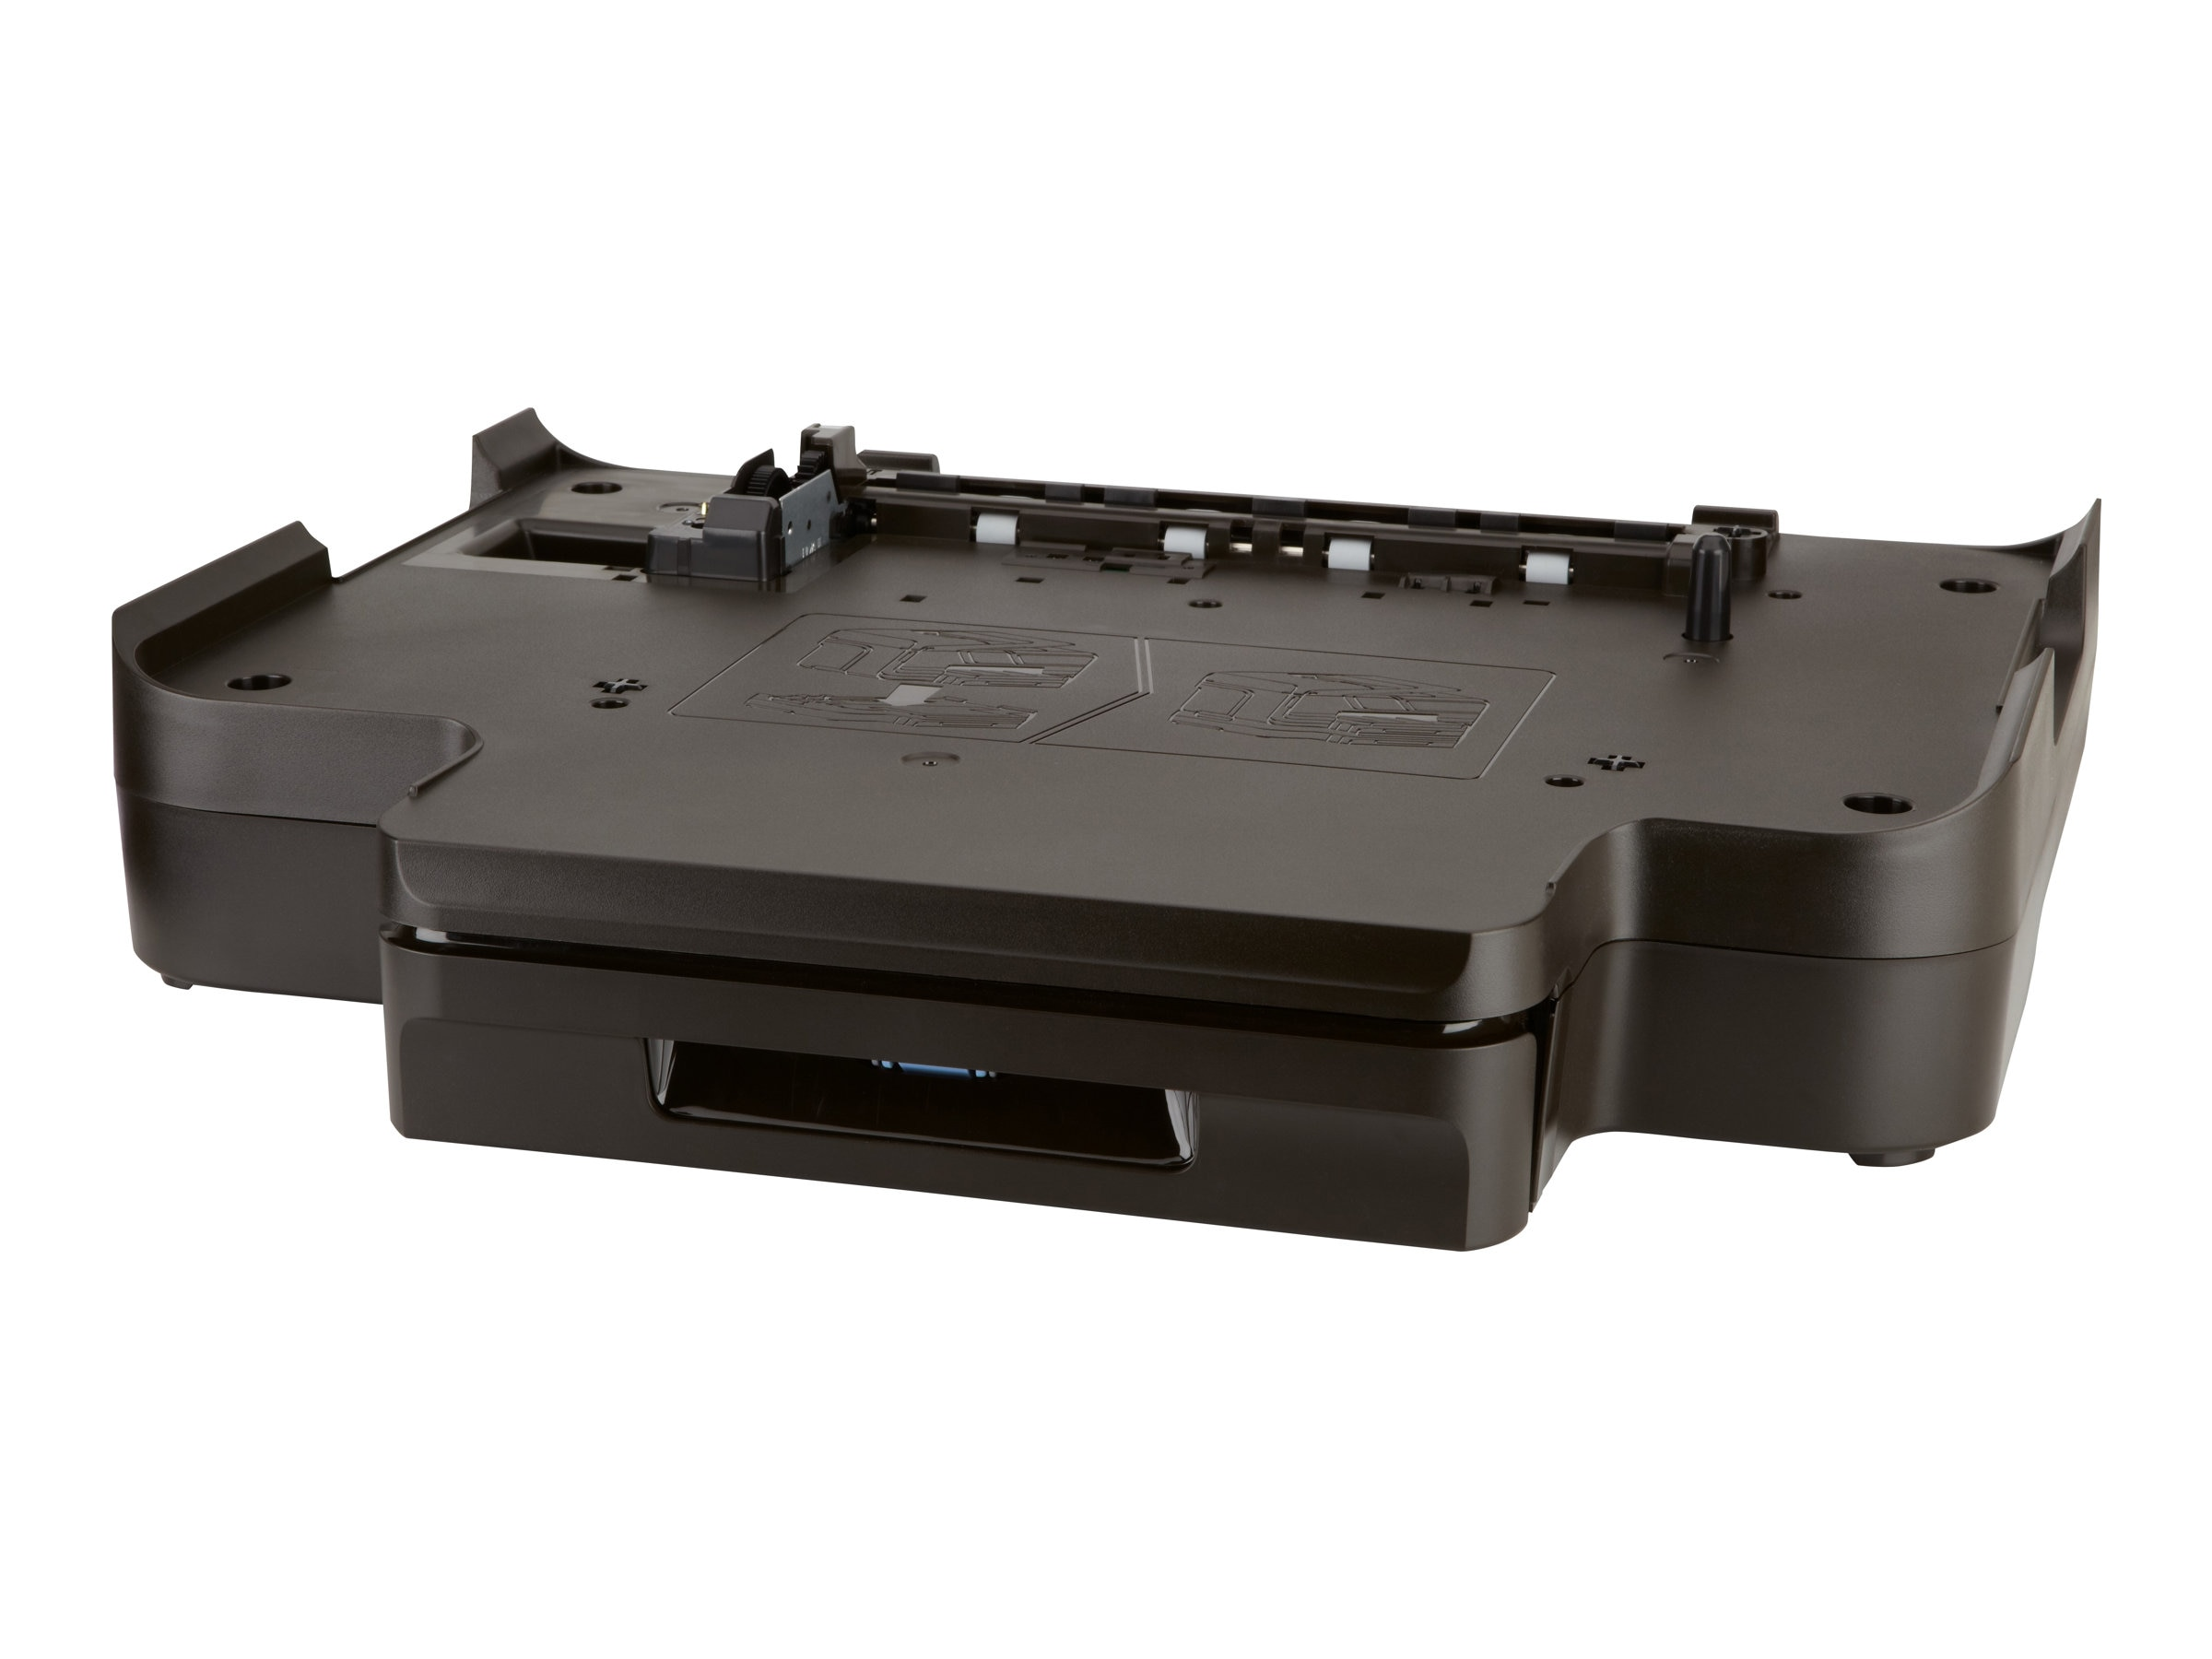 HP 250-Sheet Paper Tray for HP Officejet Pro 8600 e-All-in-One, CN548A, 13479778, Printers - Input Trays/Feeders